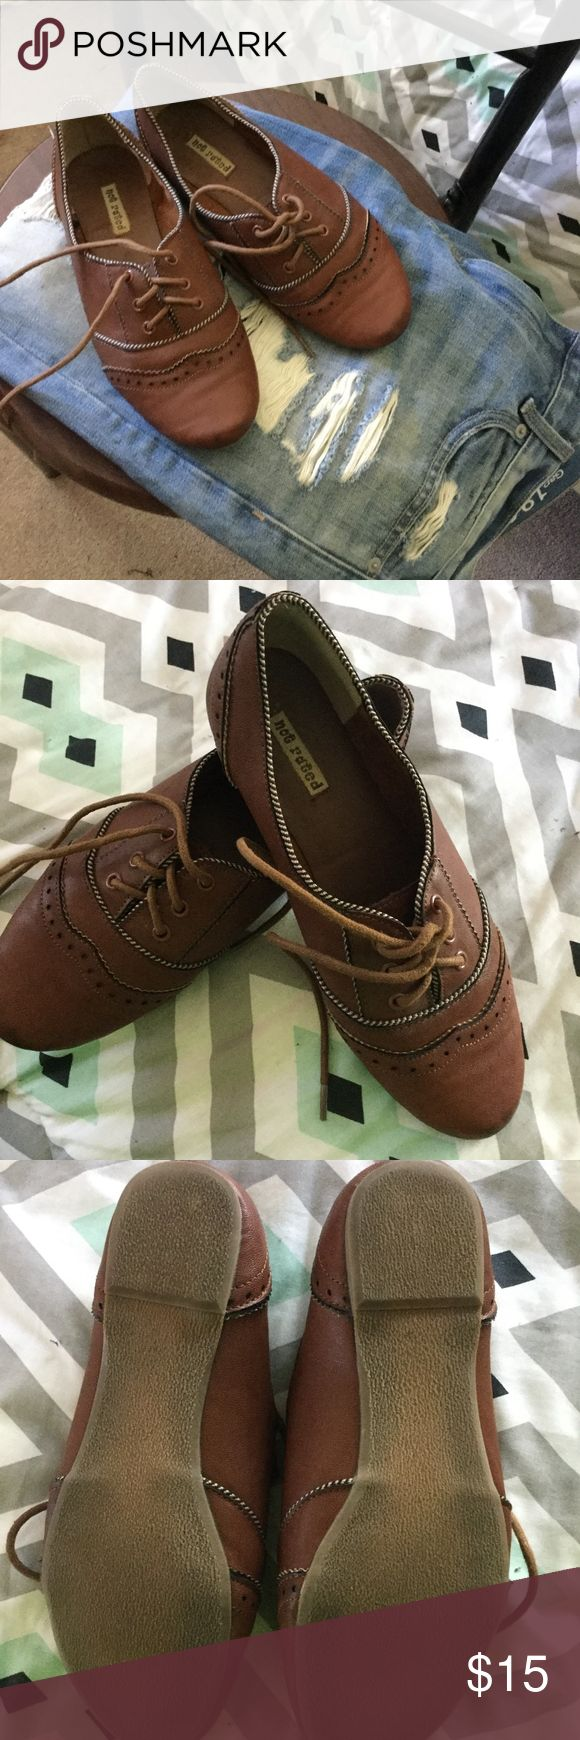 Not Rated Loafer Size 6! Beautiful brown size 6 loafer light weight great for fall! Not Rated is the brand. Great detail in shoe! Worn a few times pictures show bottoms! Great piece for vintage outfits! :) Not Rated Shoes Flats & Loafers